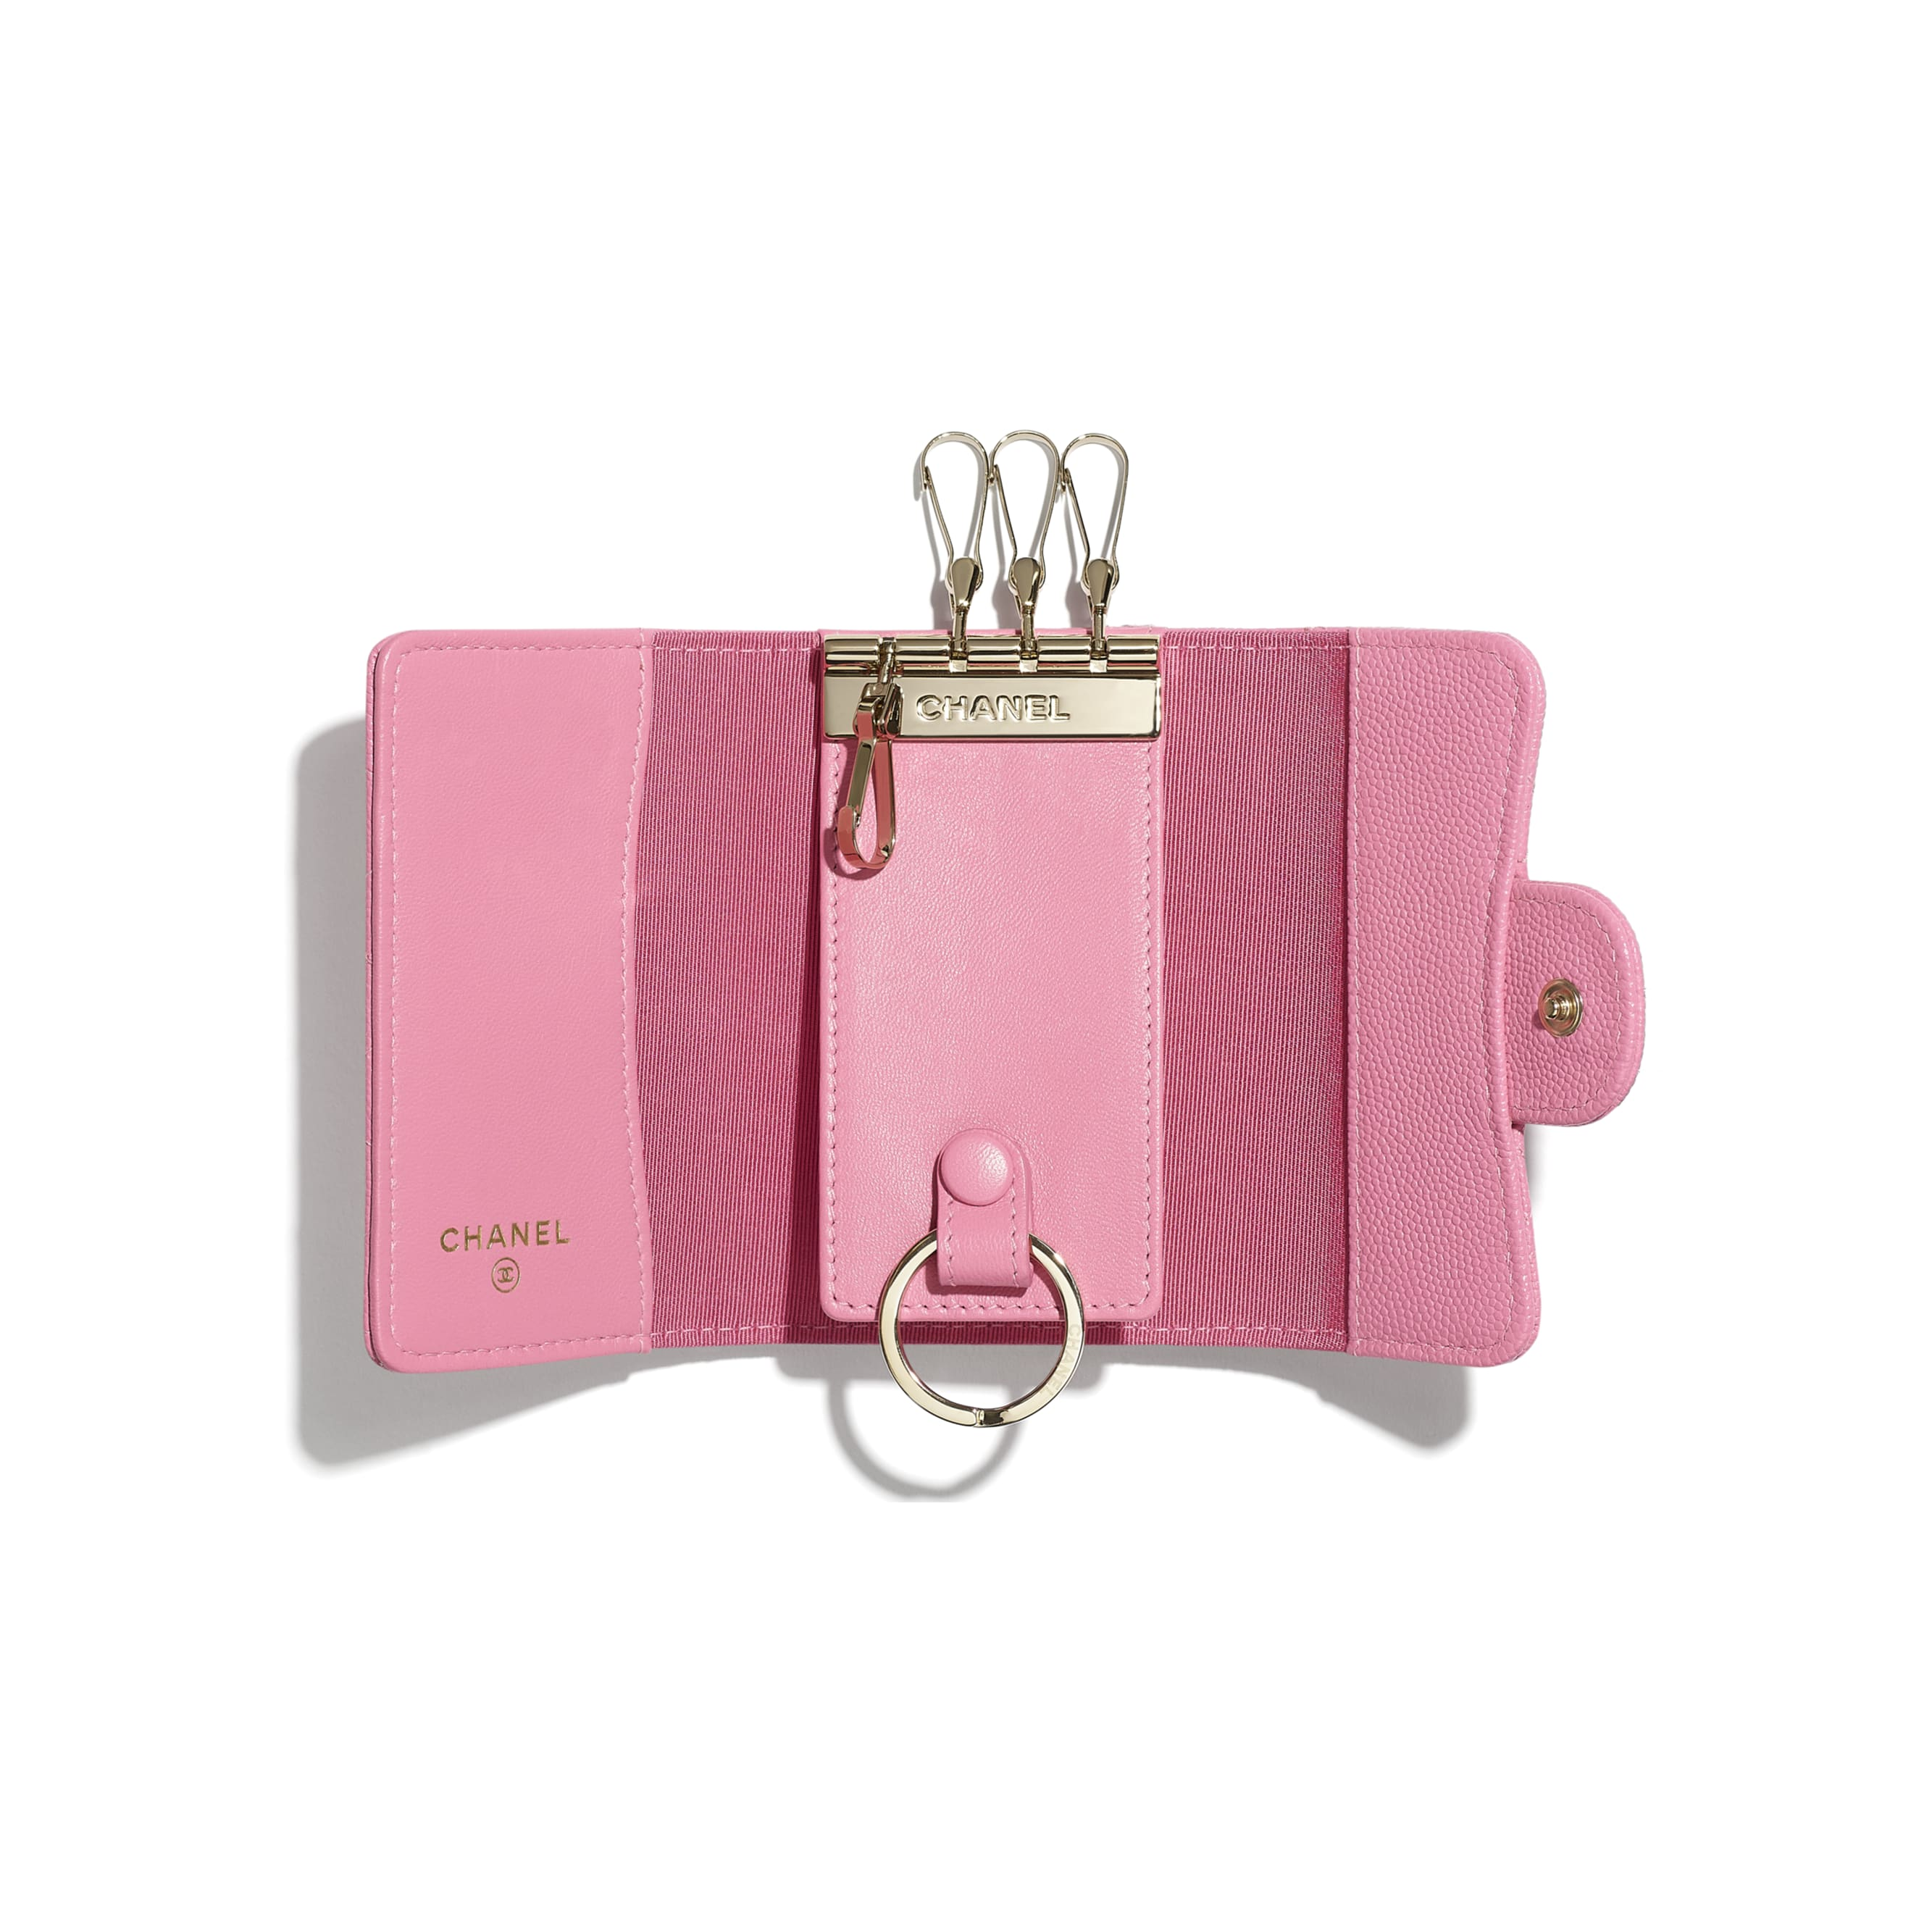 Classic Flap Key Holder - Pink - Grained Calfskin & Gold-Tone Metal - CHANEL - Alternative view - see standard sized version